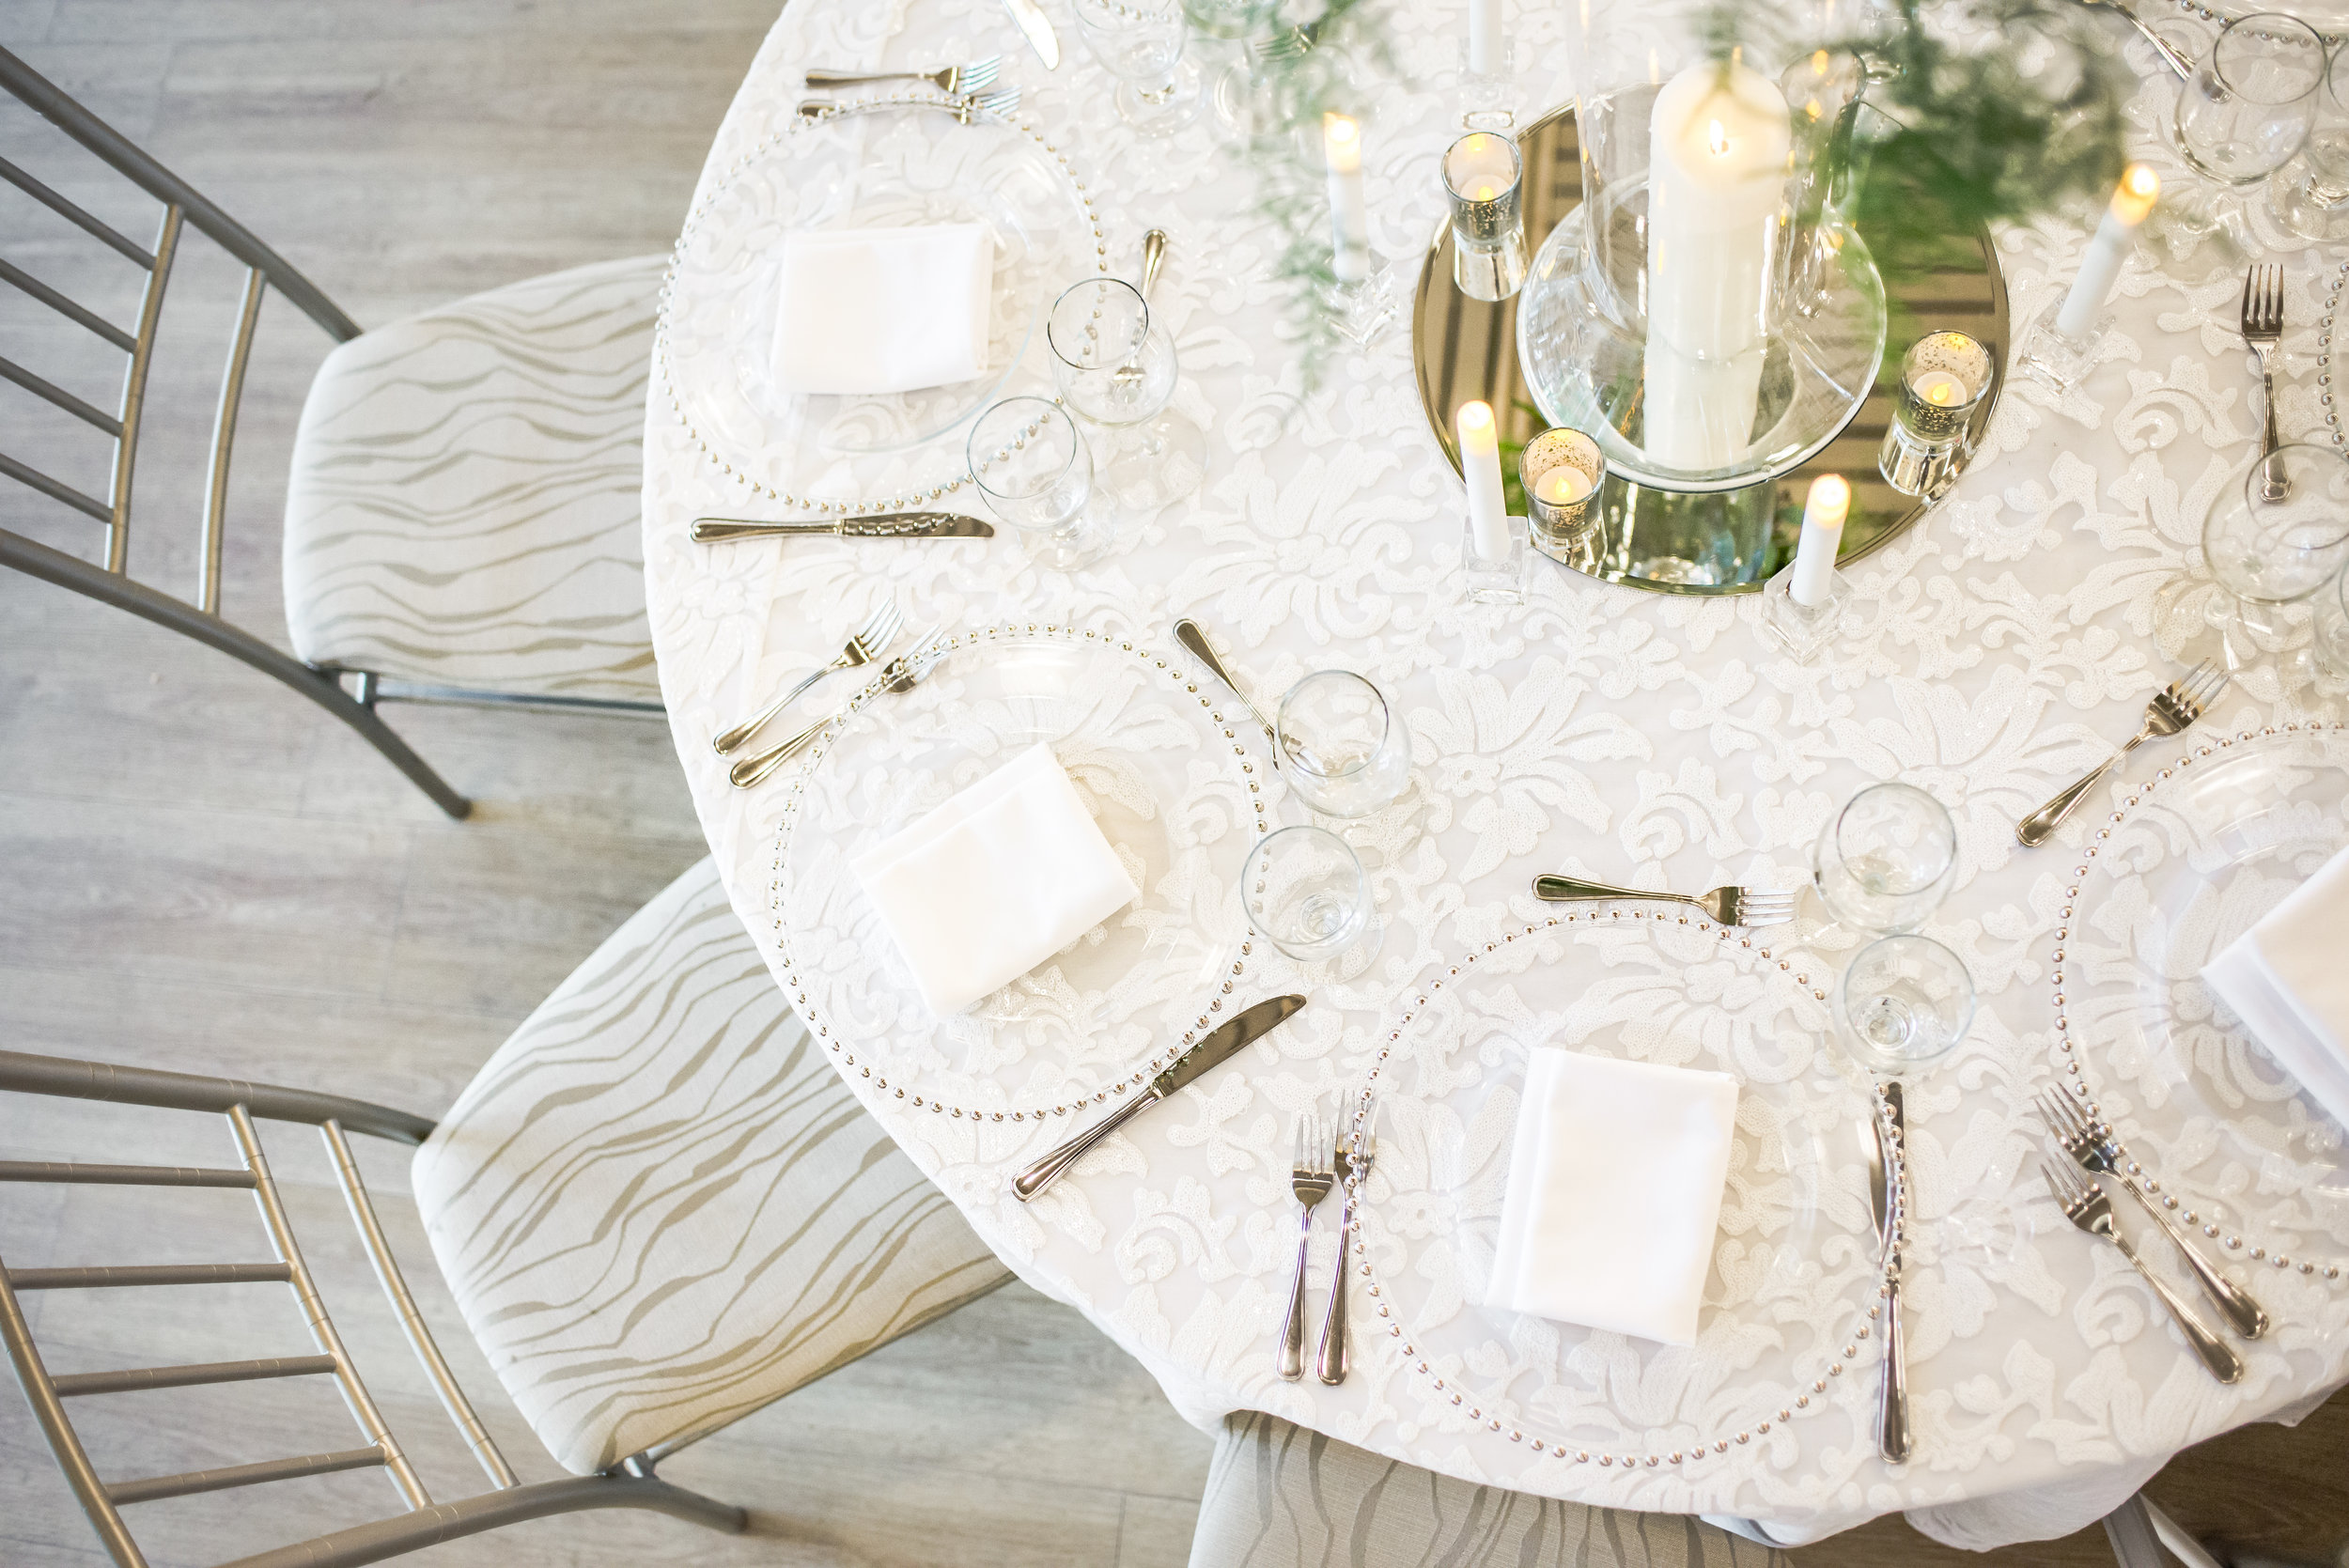 Guest table displays in the Ballroom were just as beautiful as the king's table, dressed with coordinating lace-embroidered linen, glass and mirrored details, and loads of candlelight.